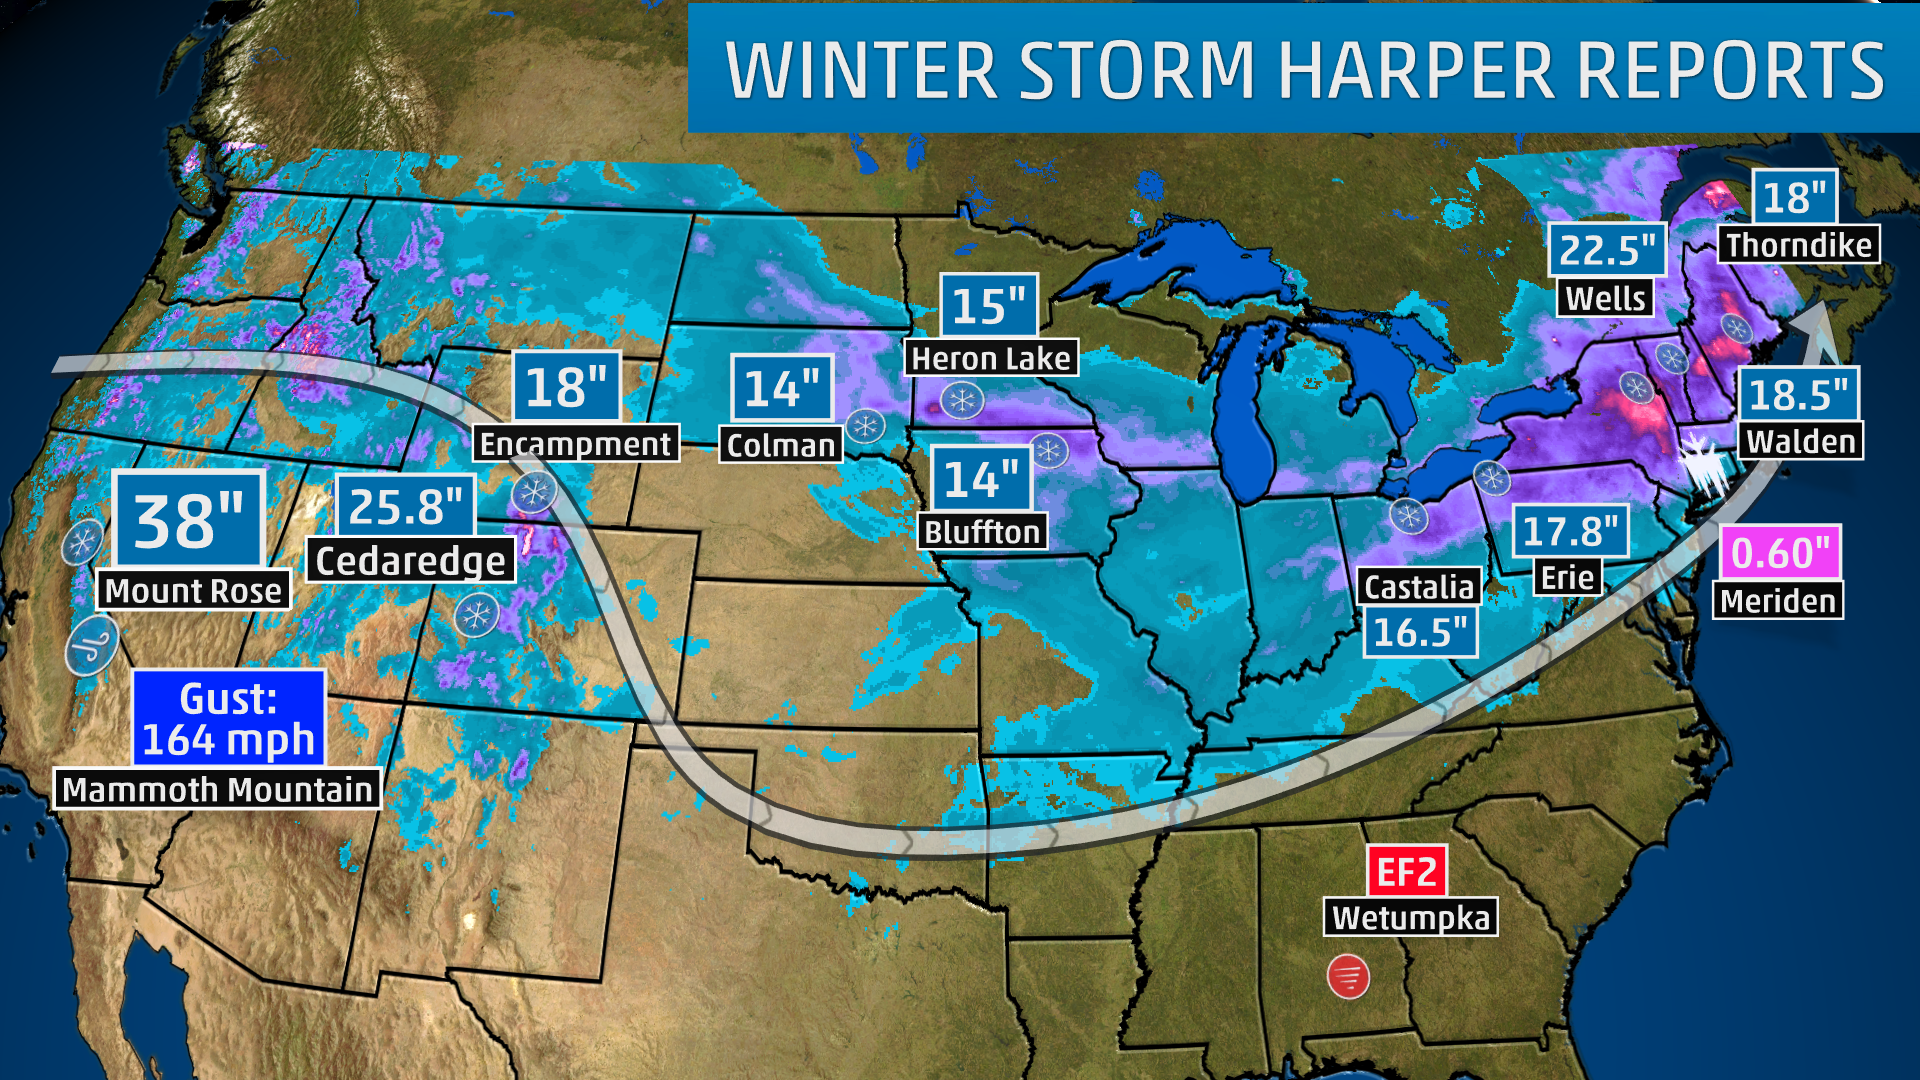 Winter Storm Harper: Final Snow Tallies